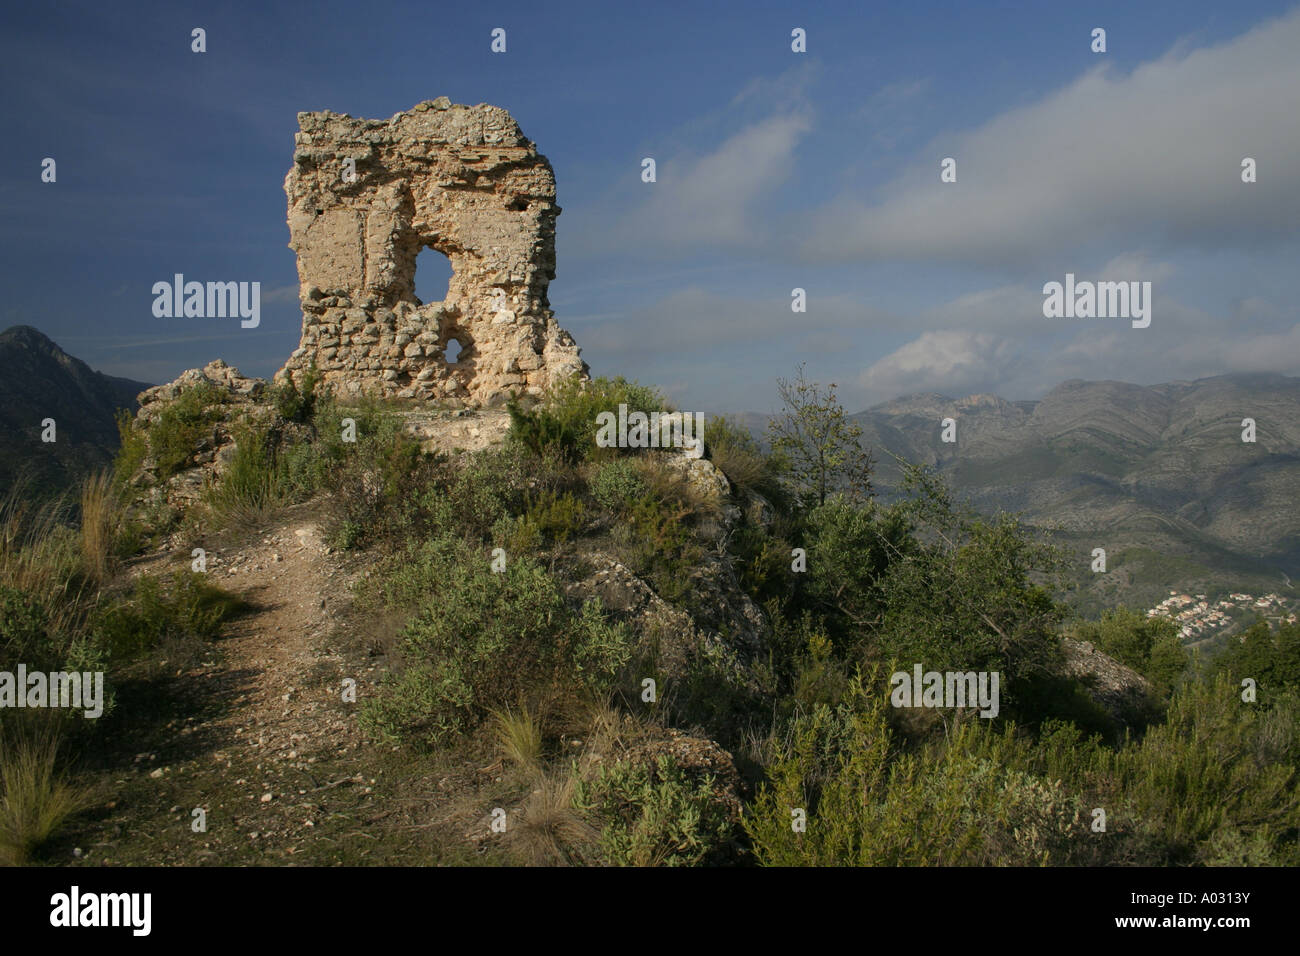 Orba Castle above the town of Orba on the Costa Blanca, Spain - Stock Image